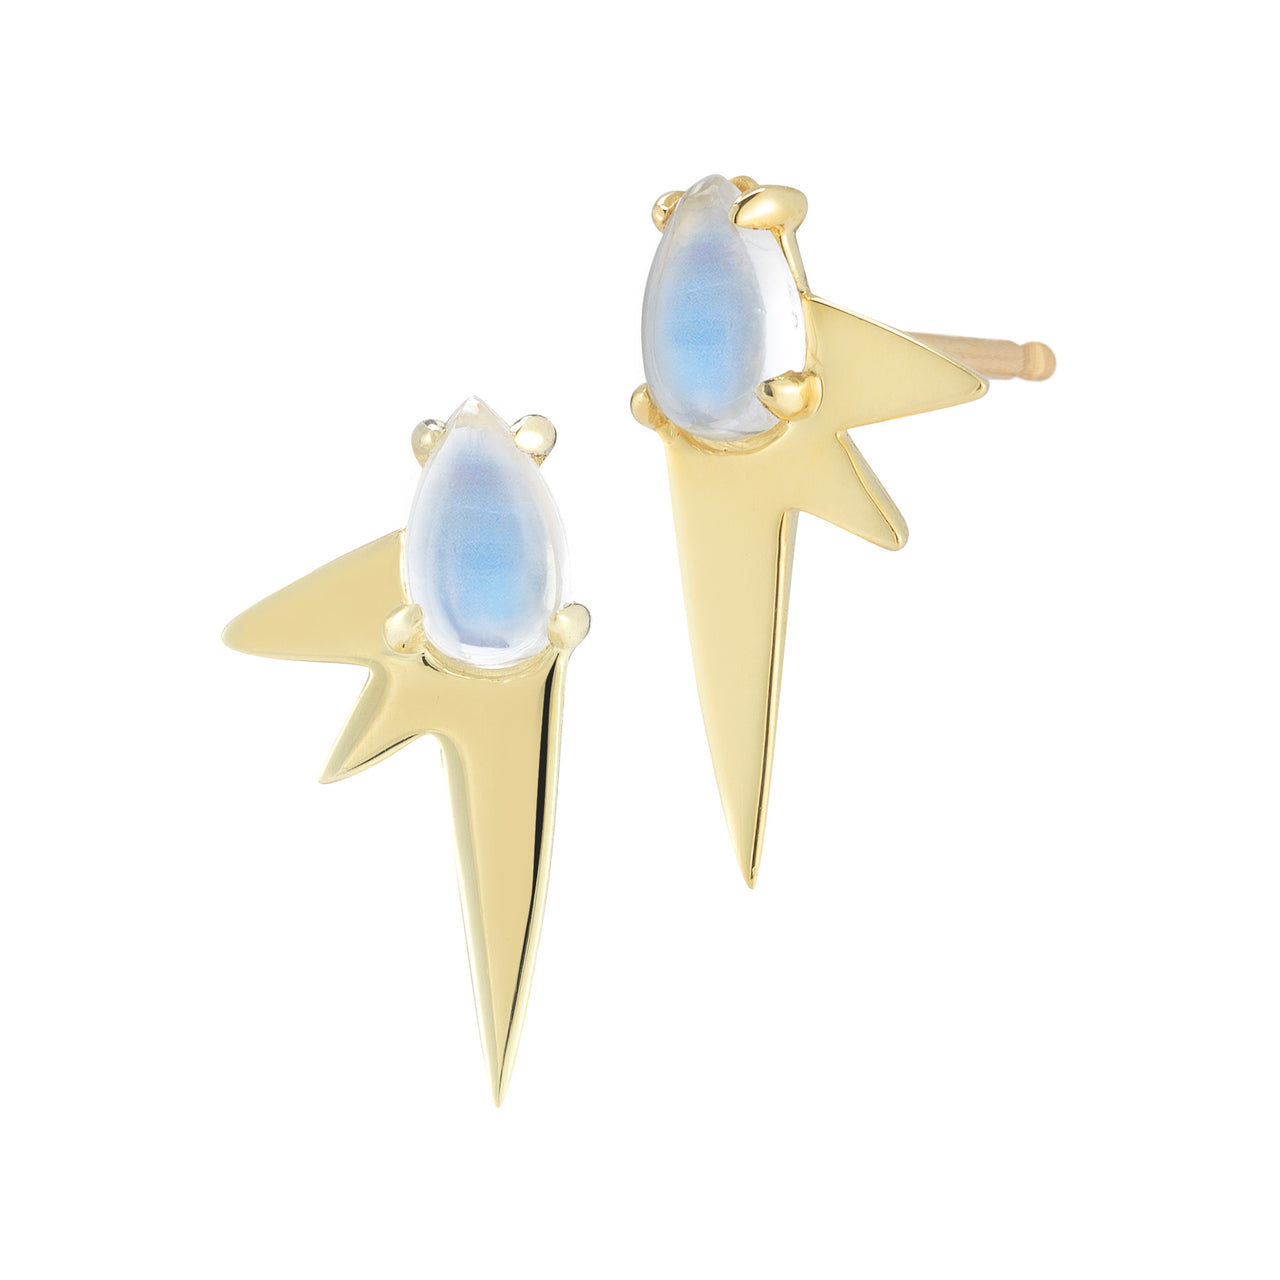 modern spike stud earrings with moonstone in 18k yellow gold by finn by candice pool neistat